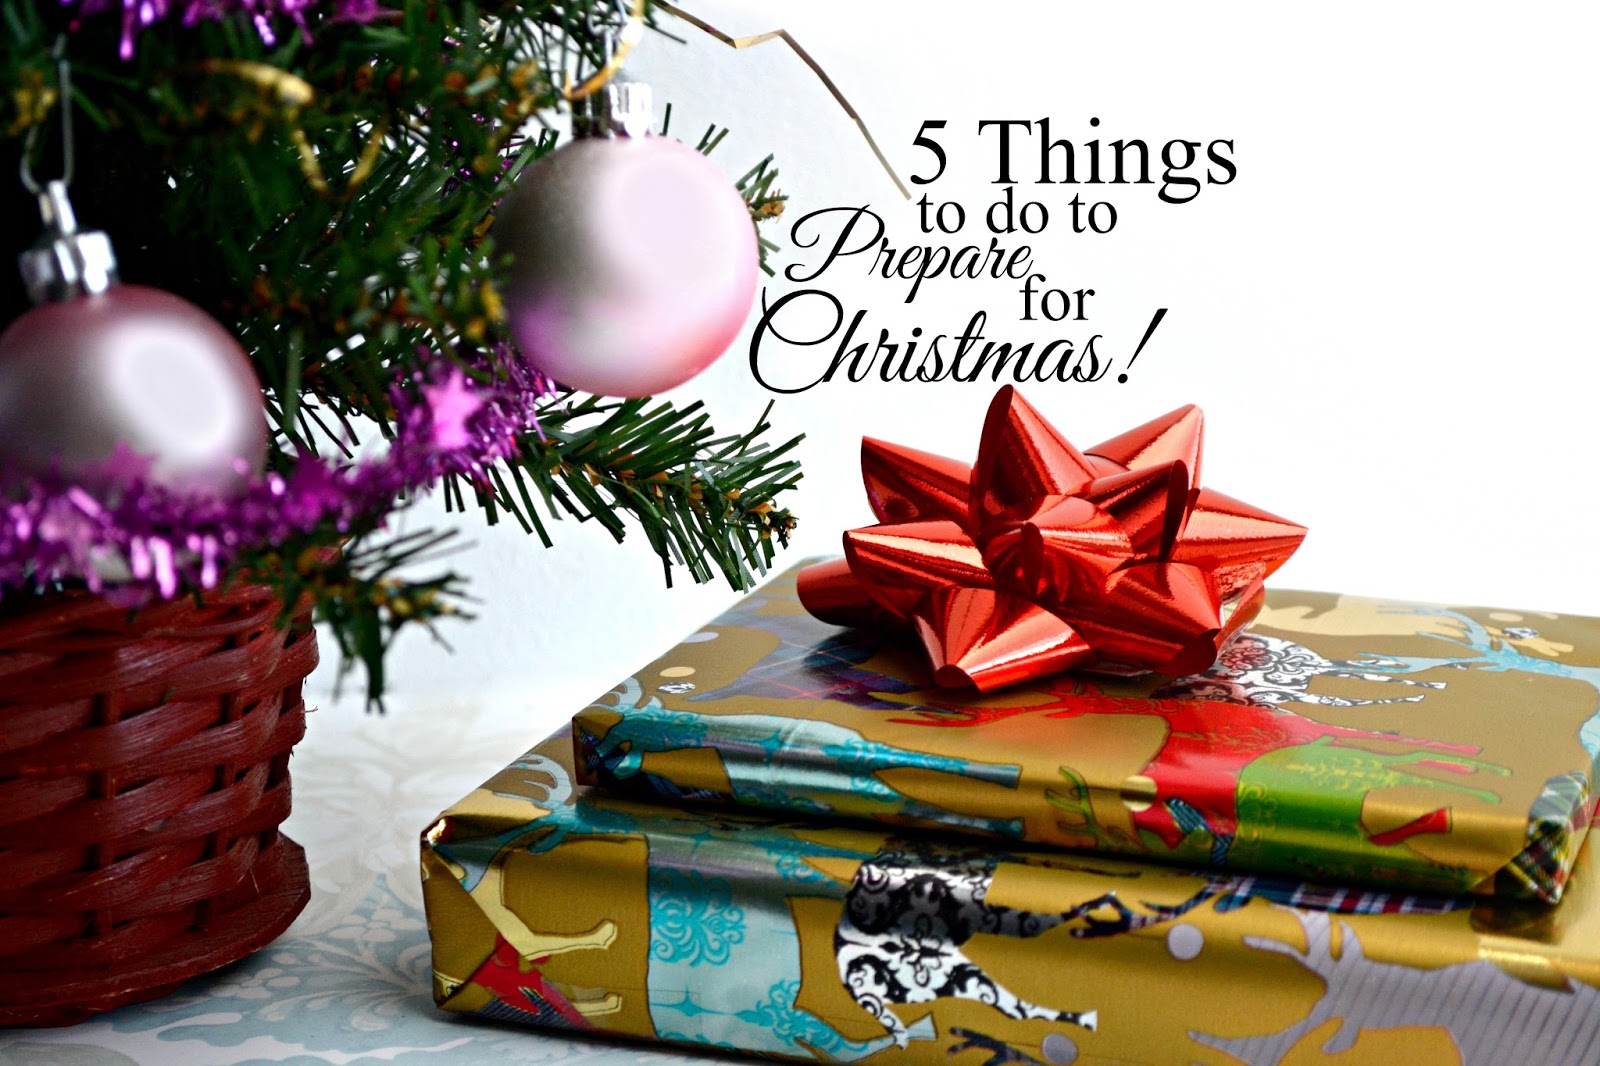 Imogen's Typewriter.: 5 Things to do to Prepare for Christmas!